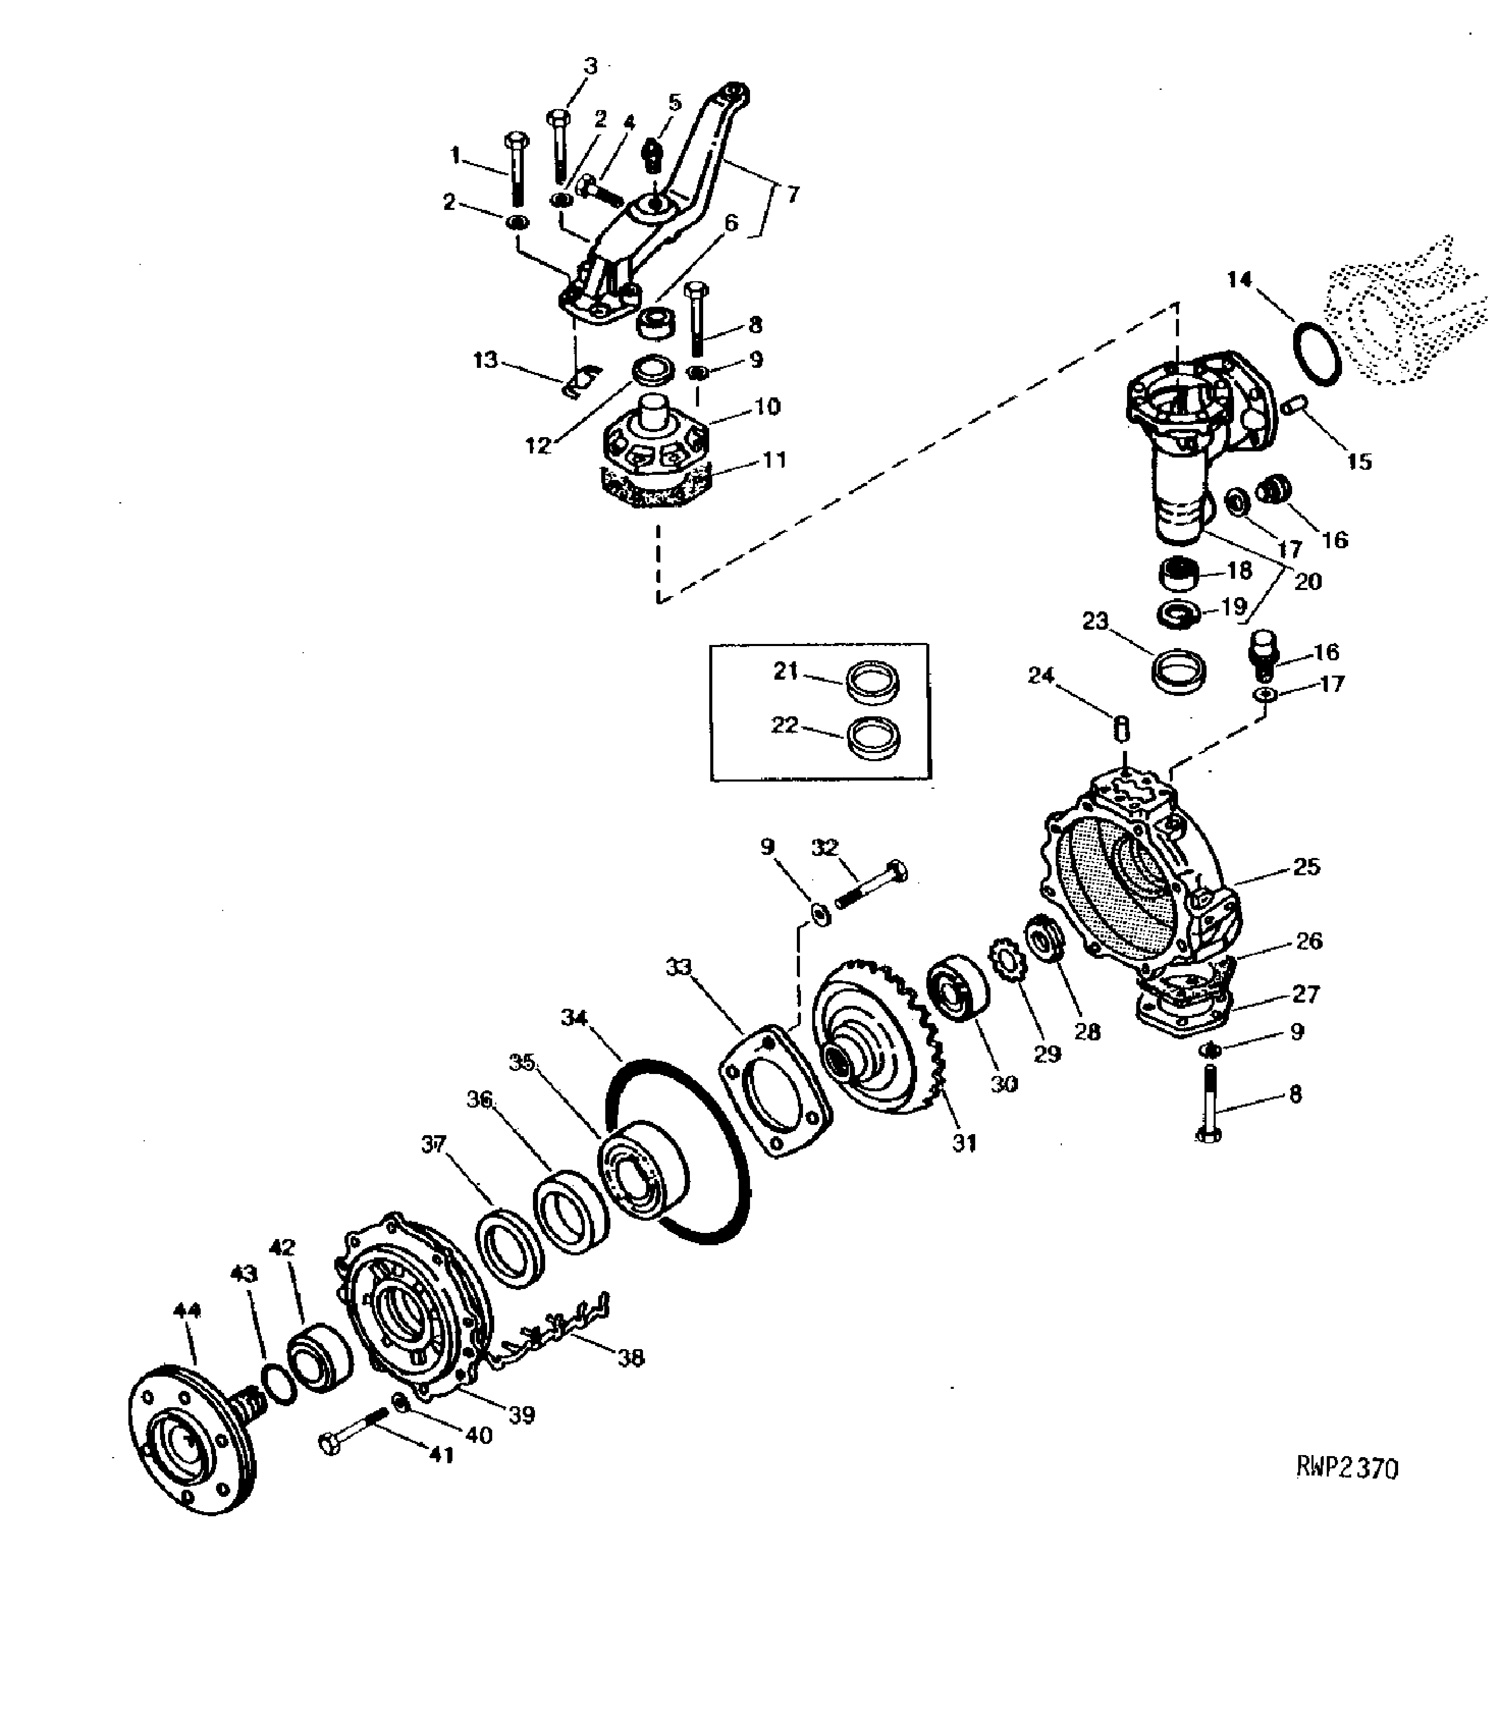 Front Axle Parts For John Deere Compact Tractors